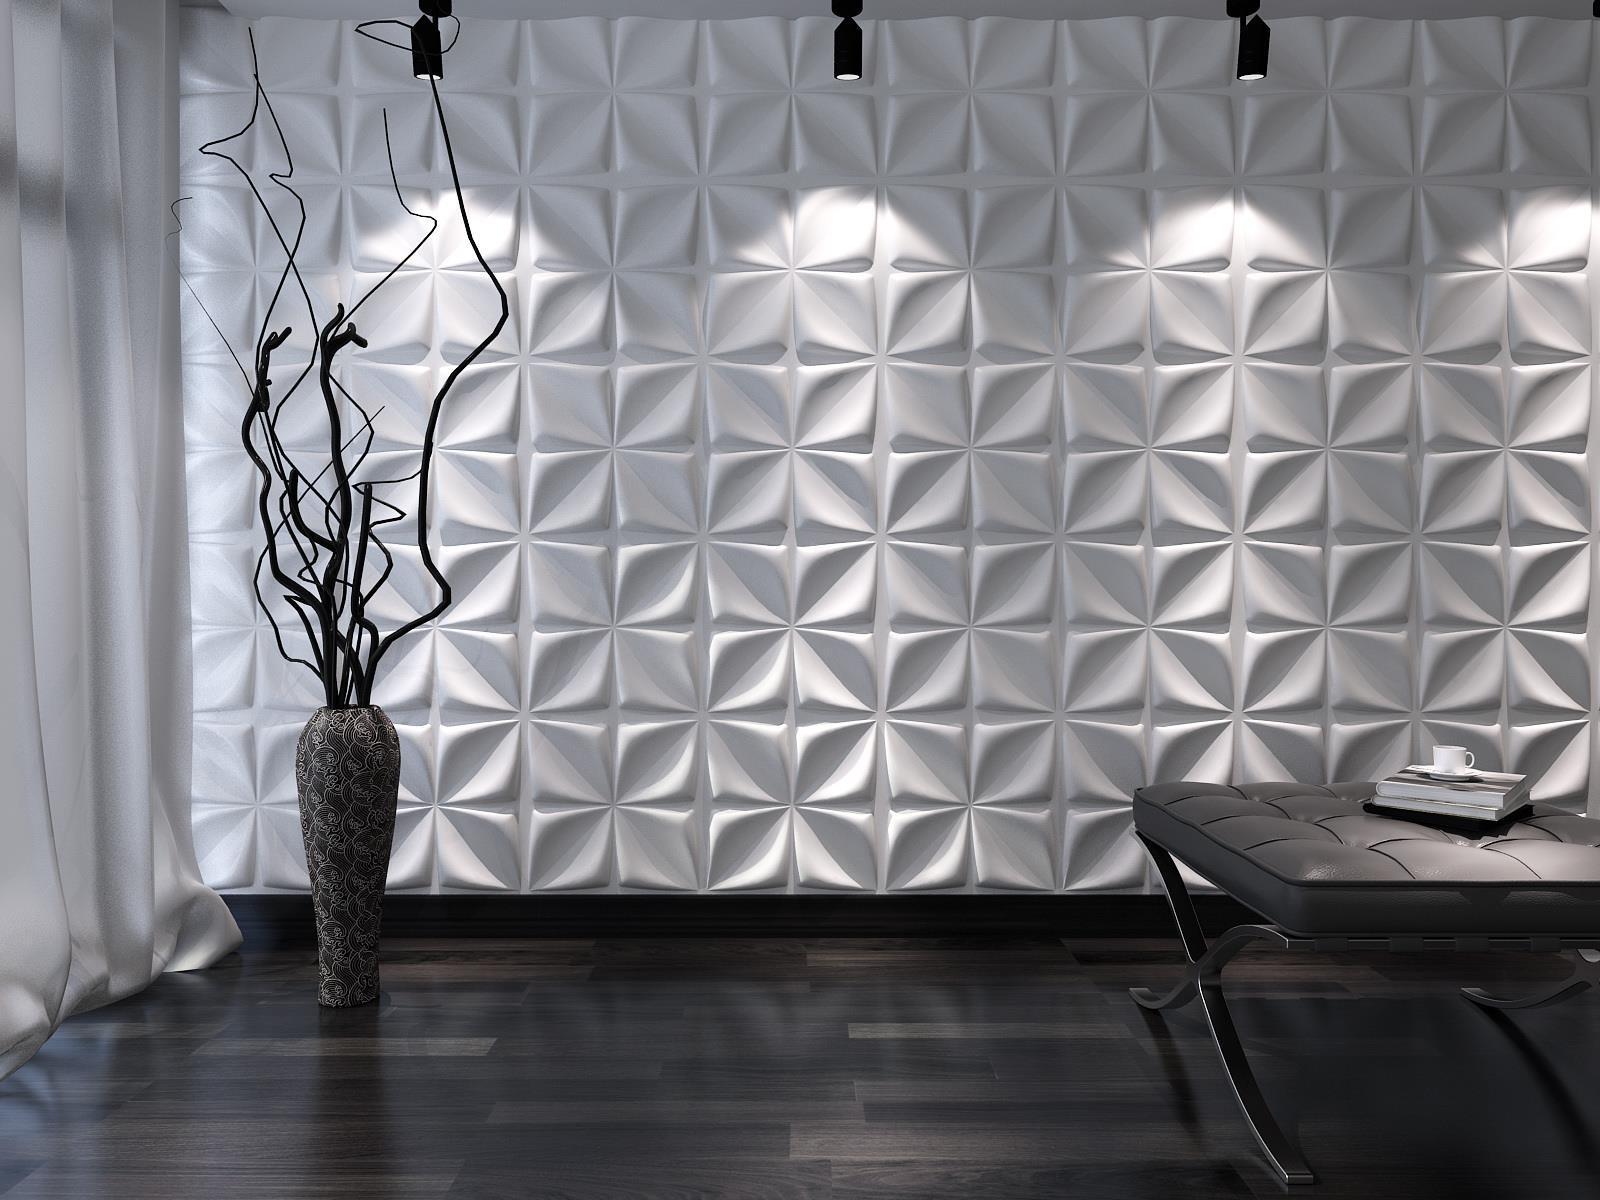 3D Wall Decor Panels Uk. (View 13 of 20)